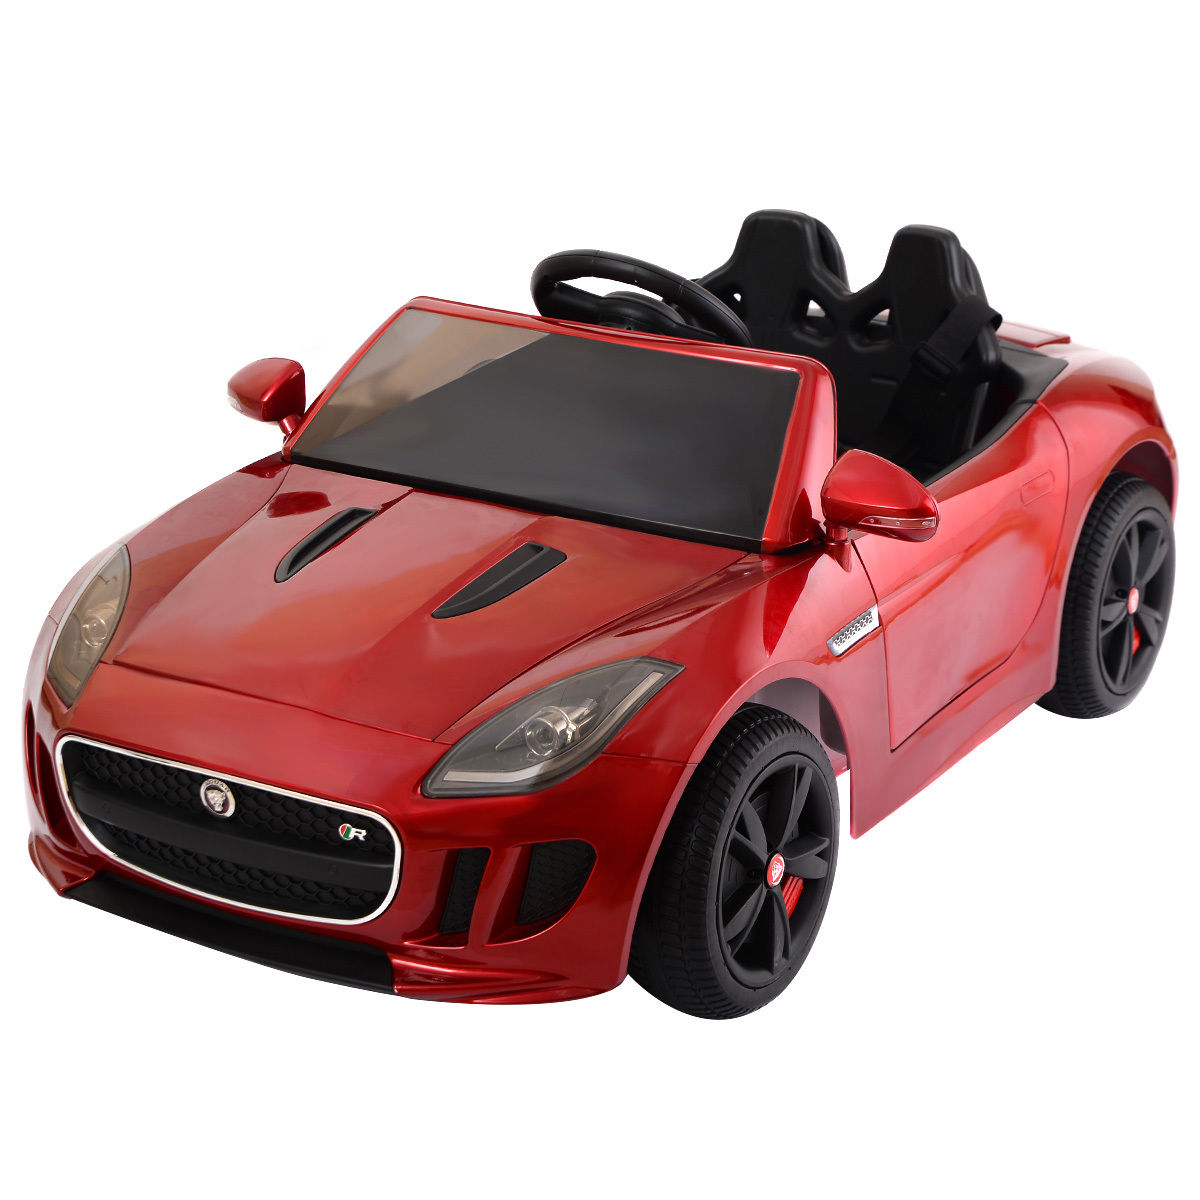 Jaguar F-TYPE 12V Battery Power Kids Ride On Car Licensed MP3 RC Remote Control